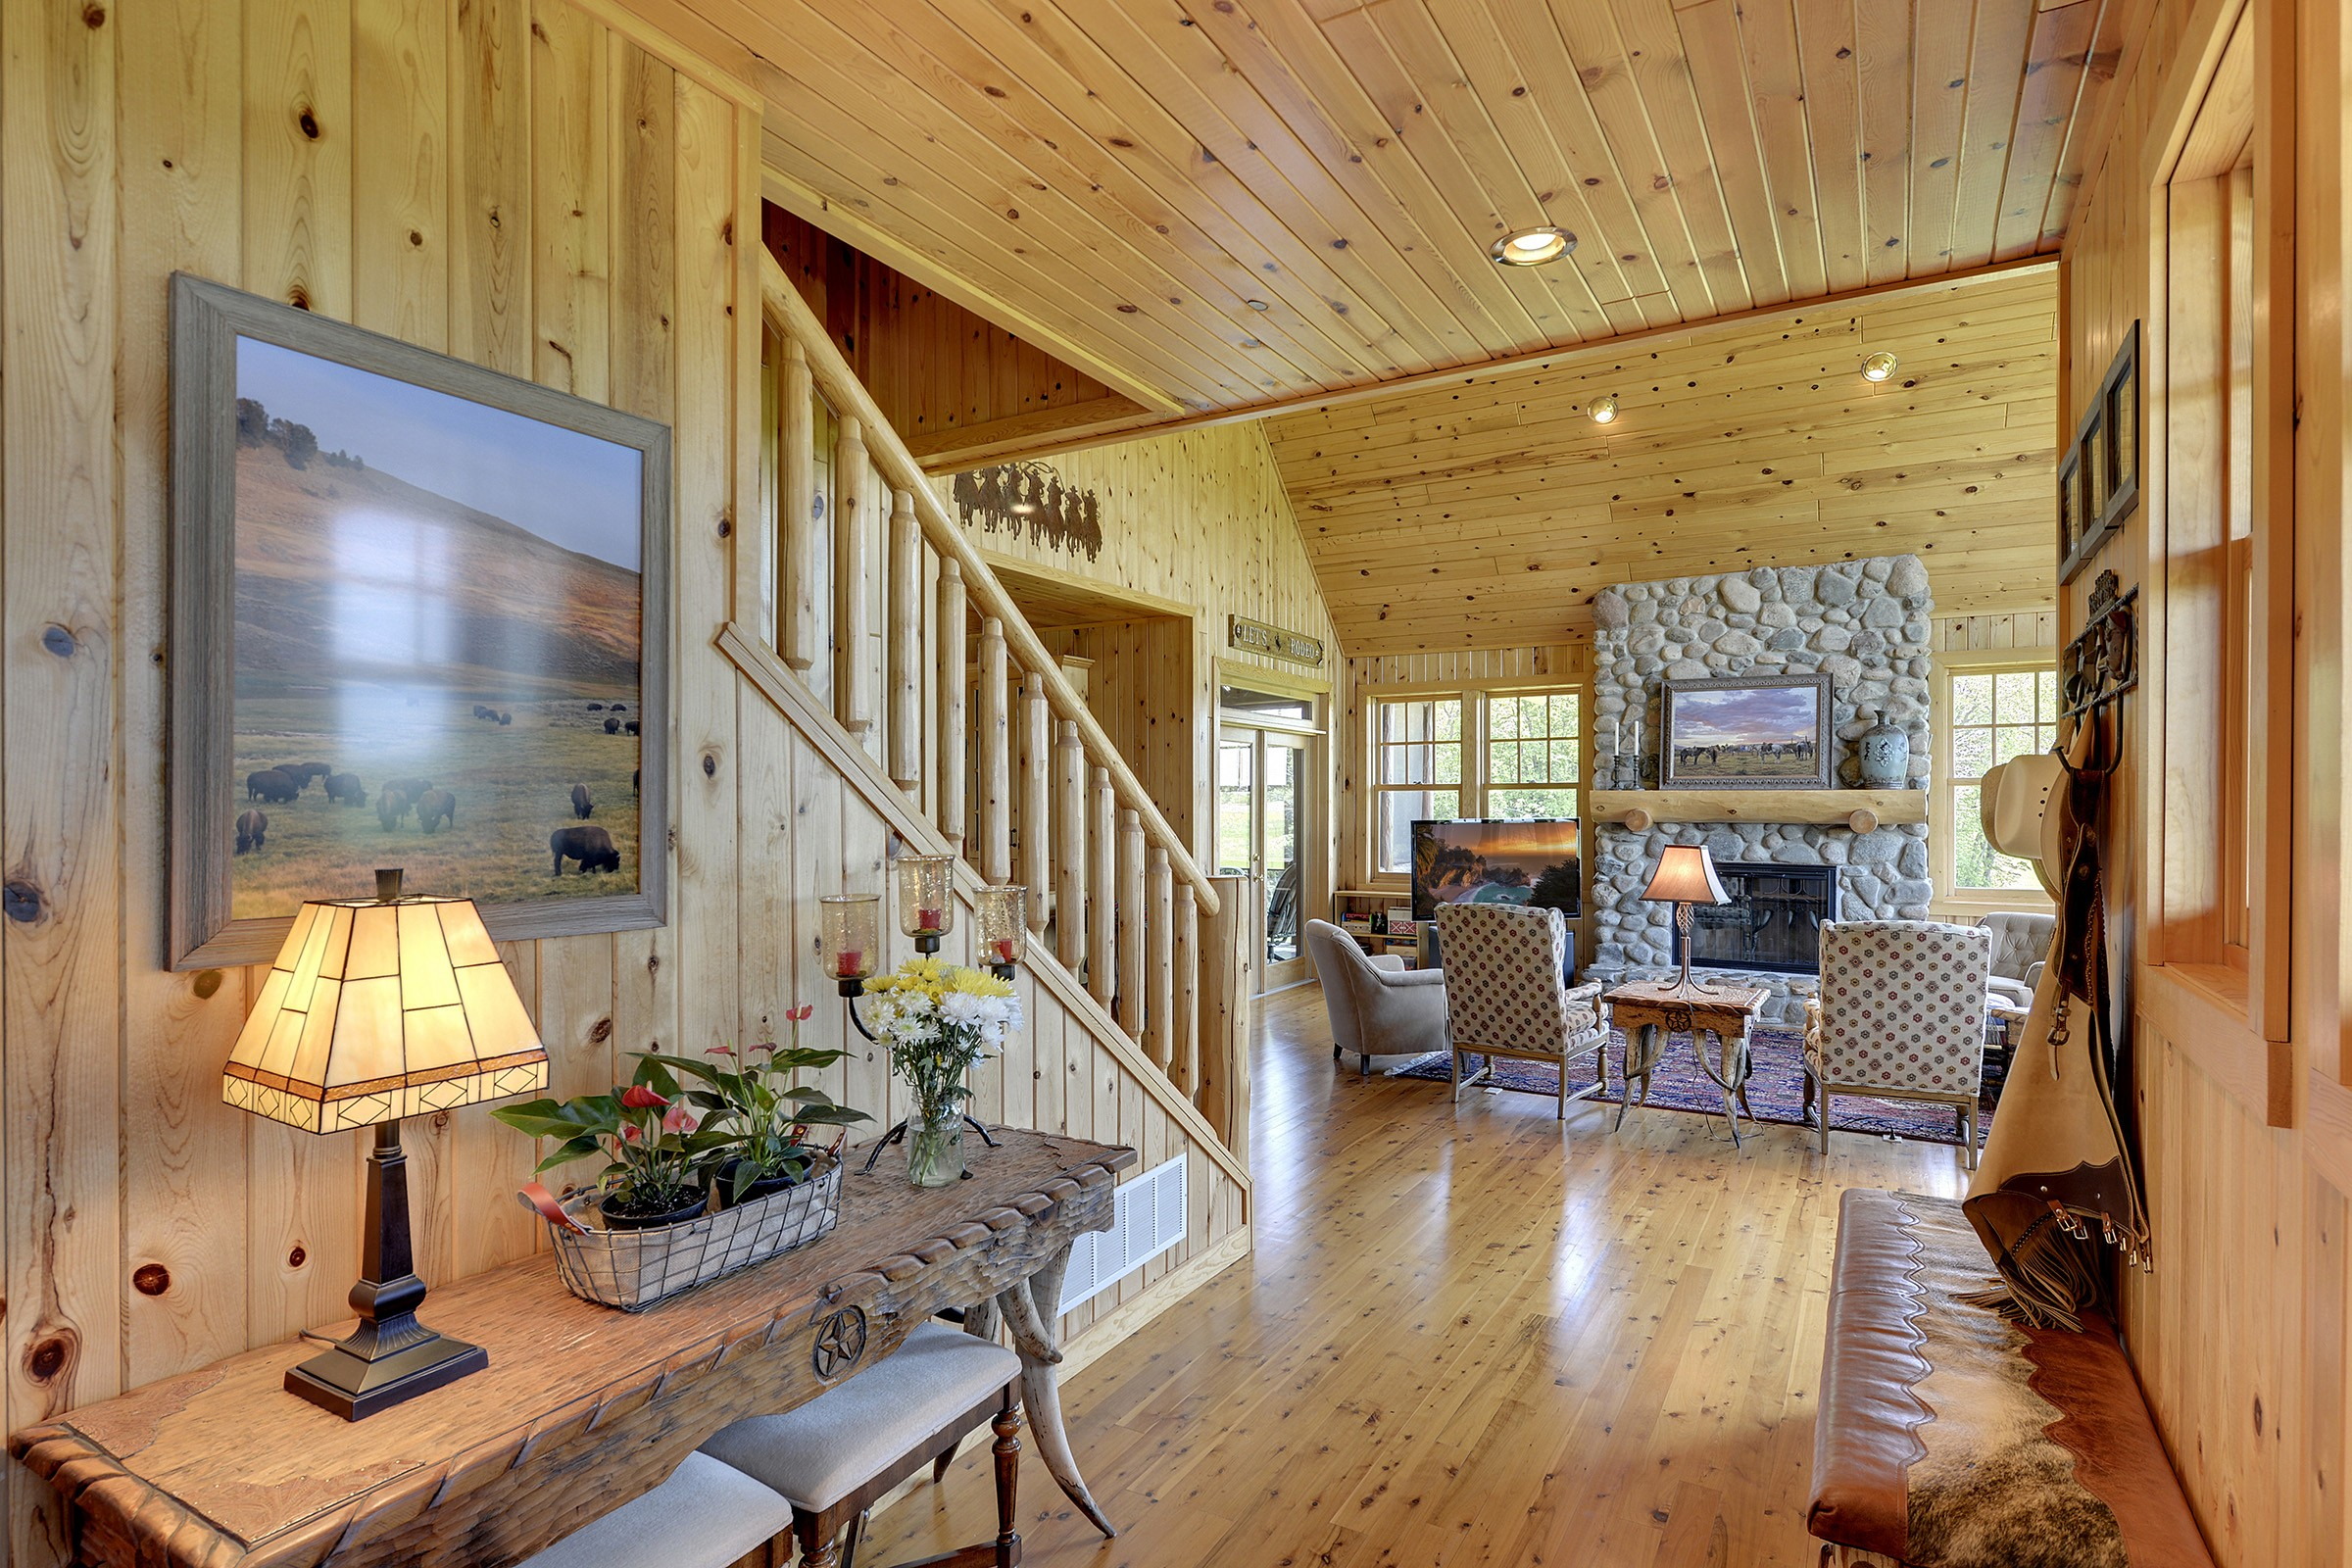 The home features hand-crafted wood throughout.